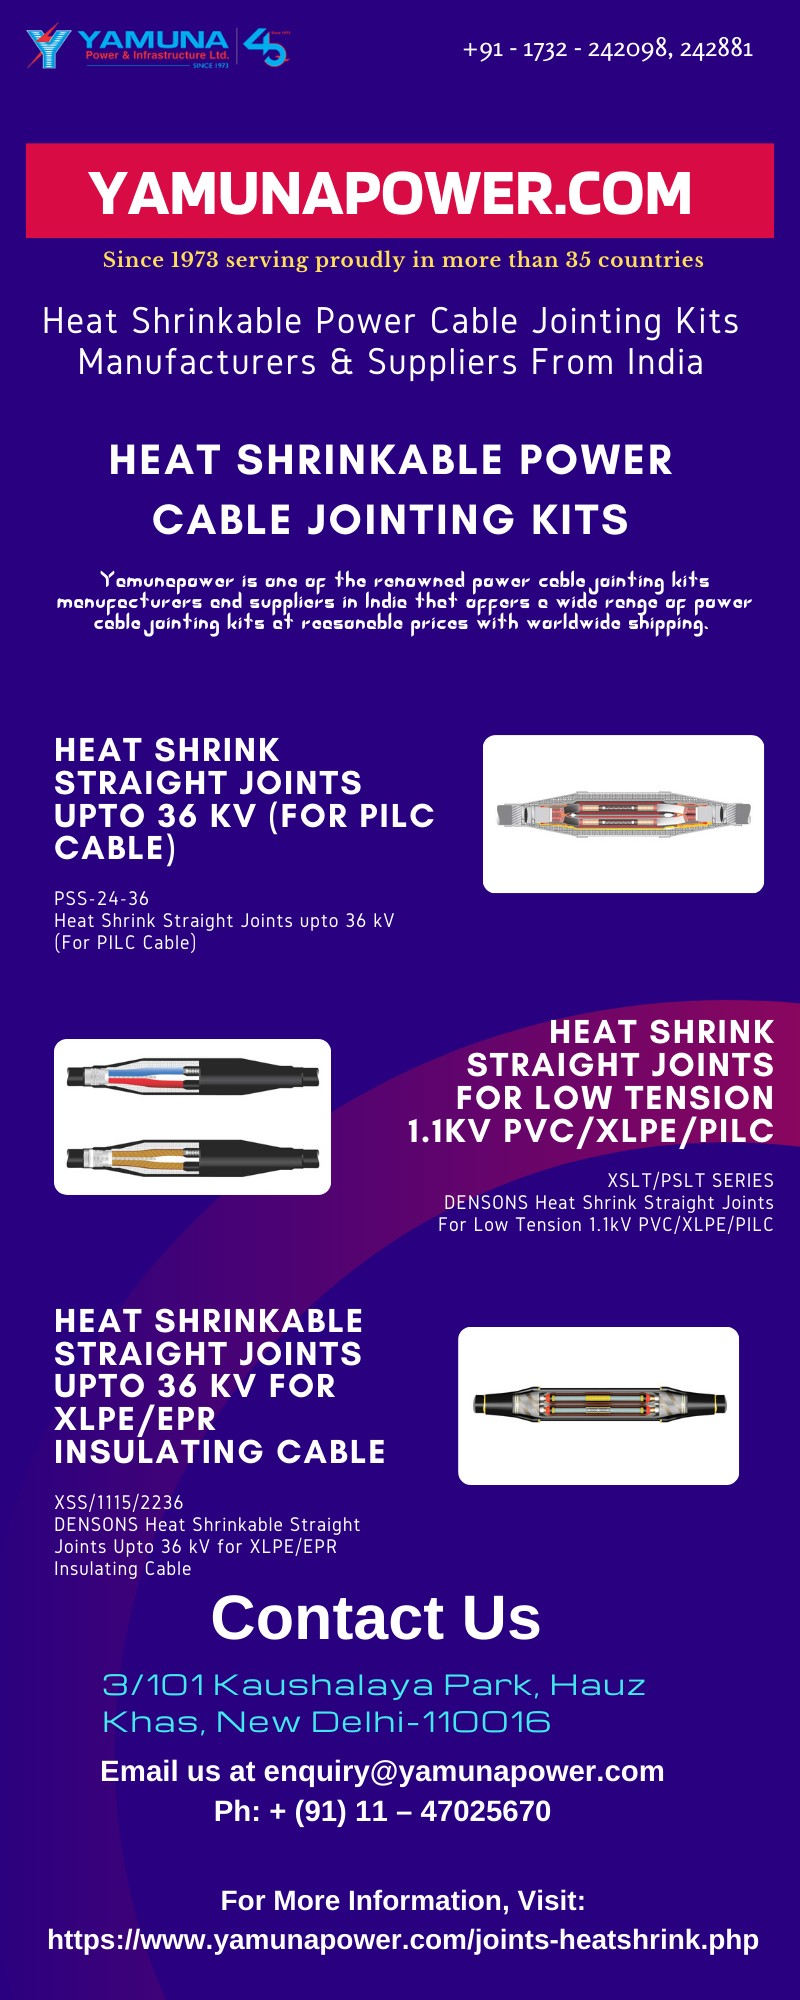 Power Cable Jointing Kits Suppliers